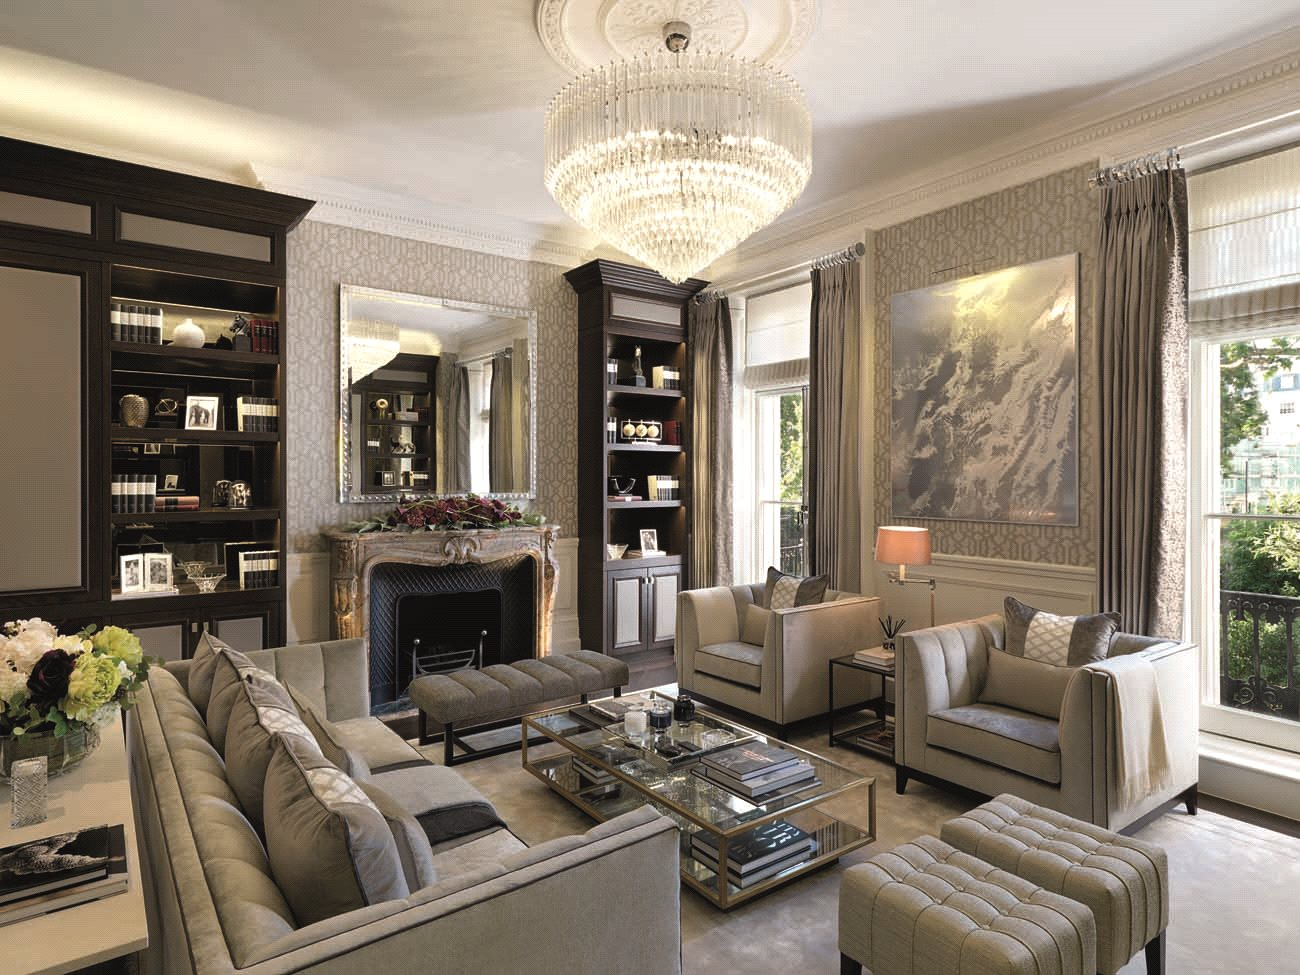 Belgravia Luxury Real Estate for Sale Christies